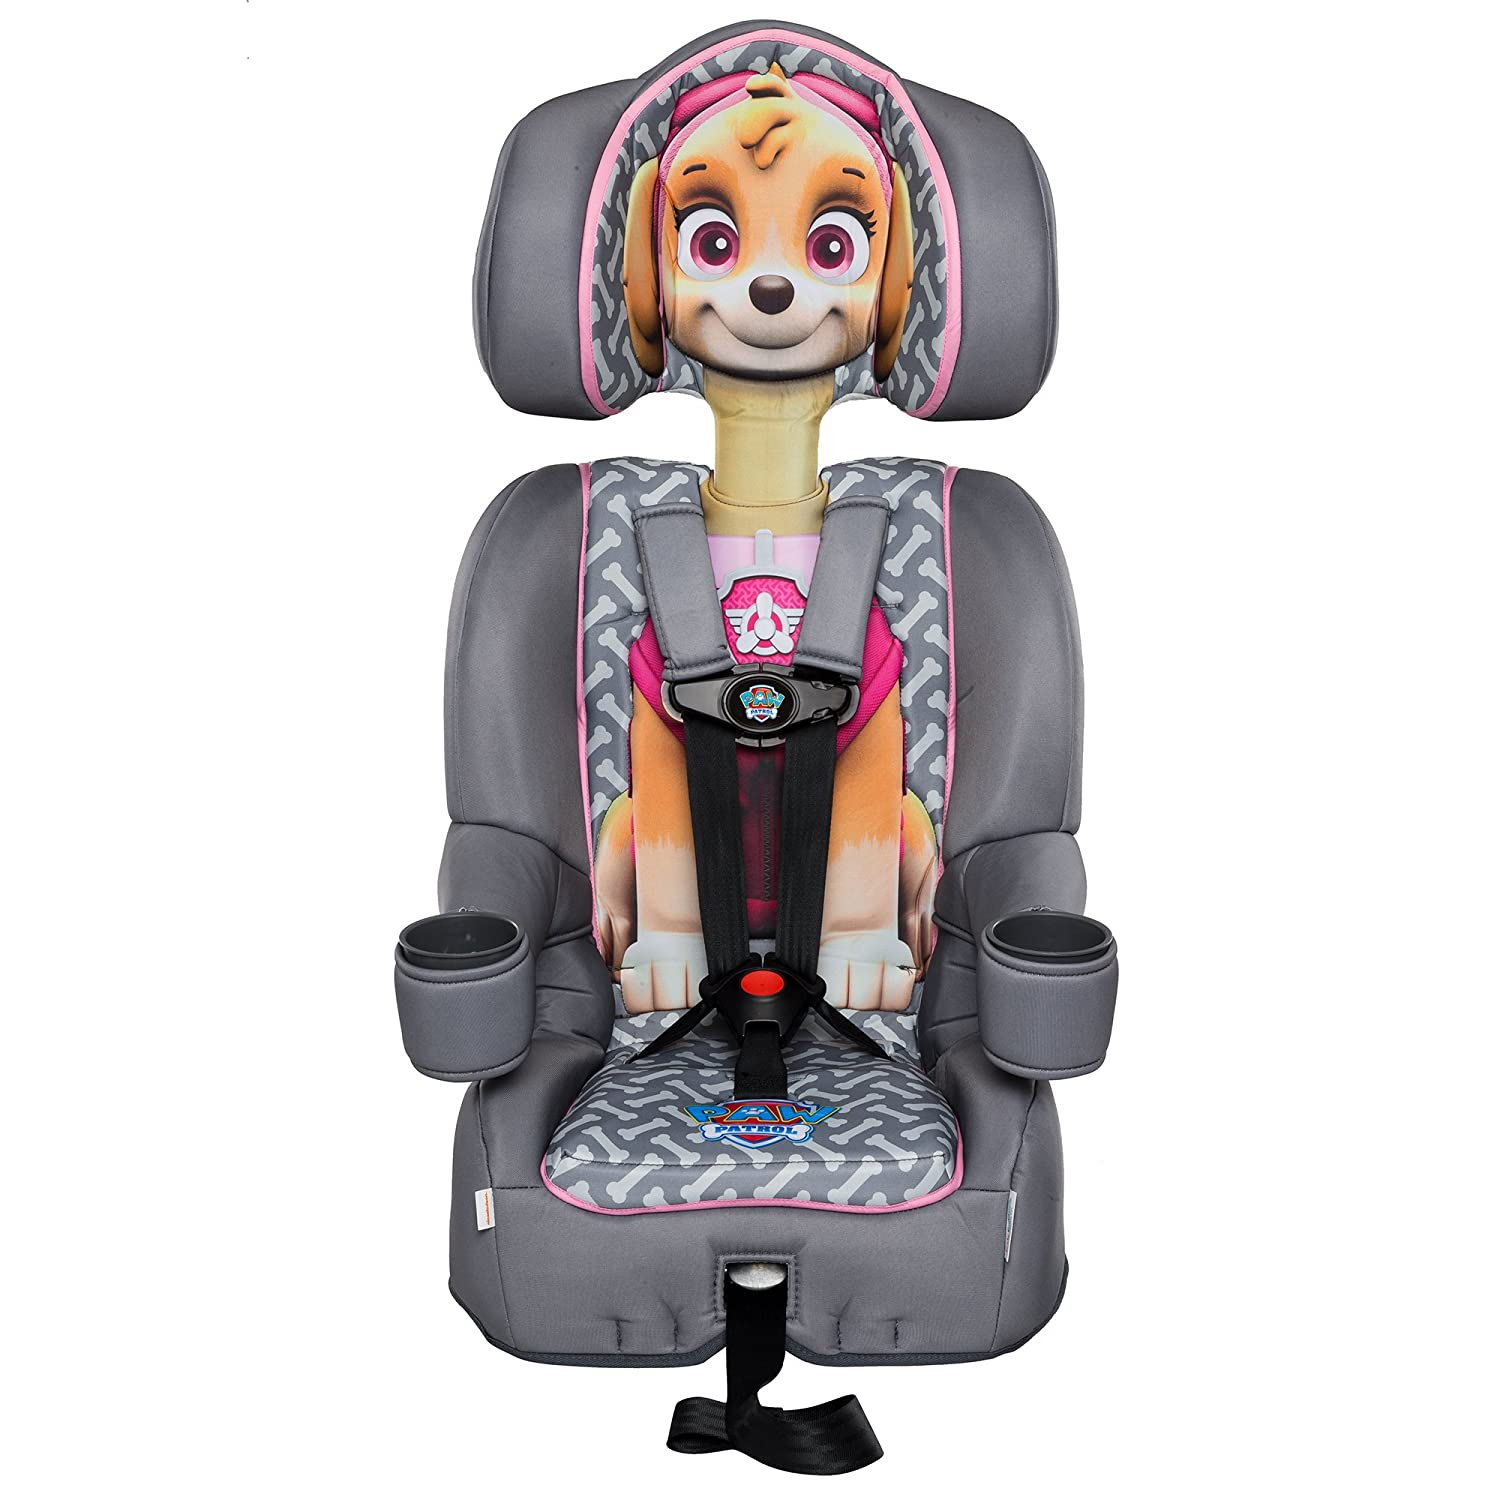 KidsEmbrace Paw Patrol Booster Car Seat Nickelodeon Marshall Combination 5 Point Harness